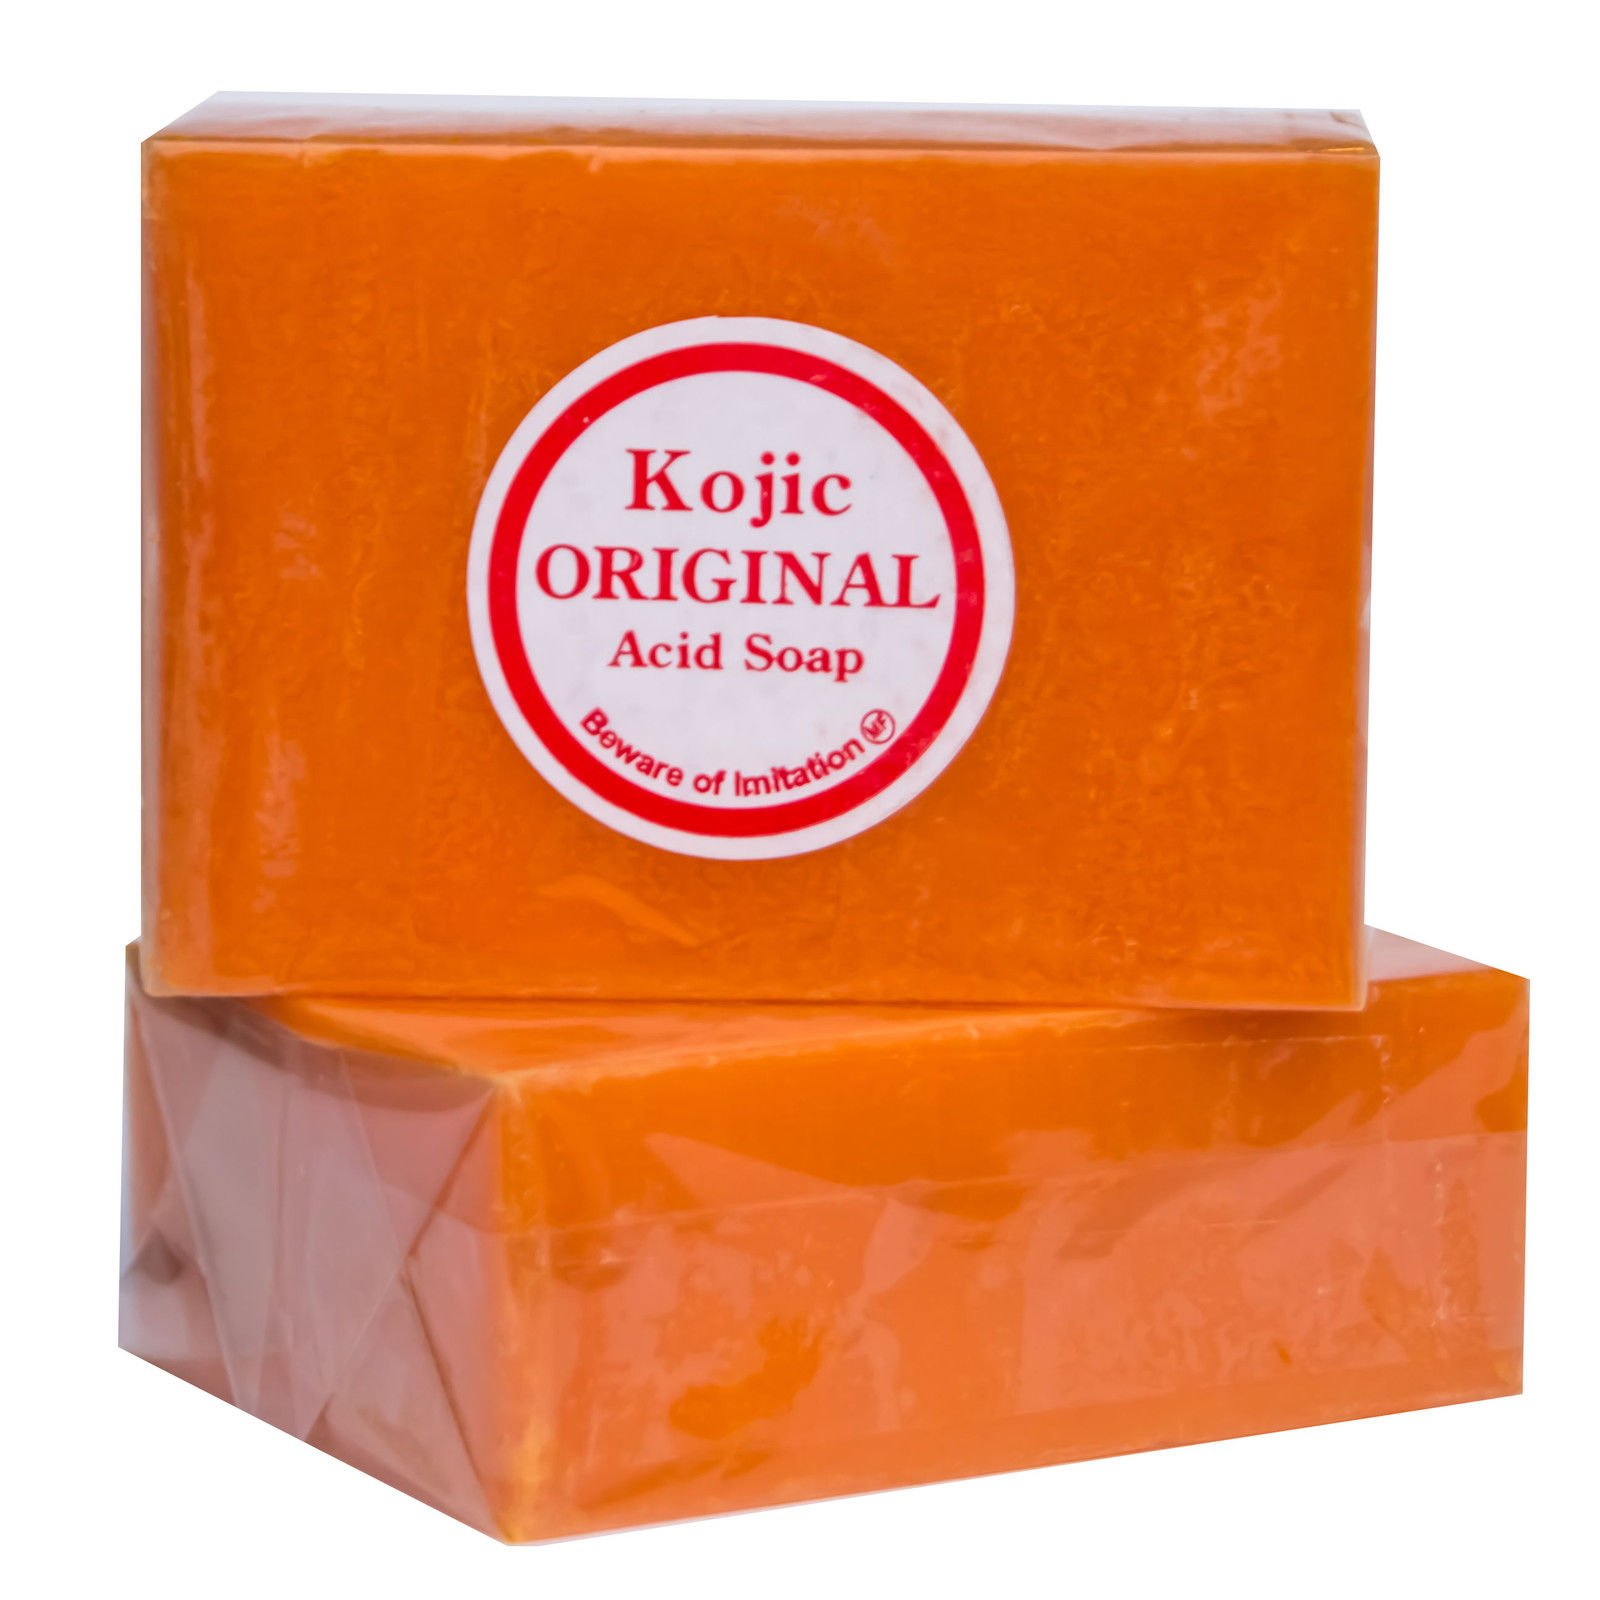 Kojic acid soap original